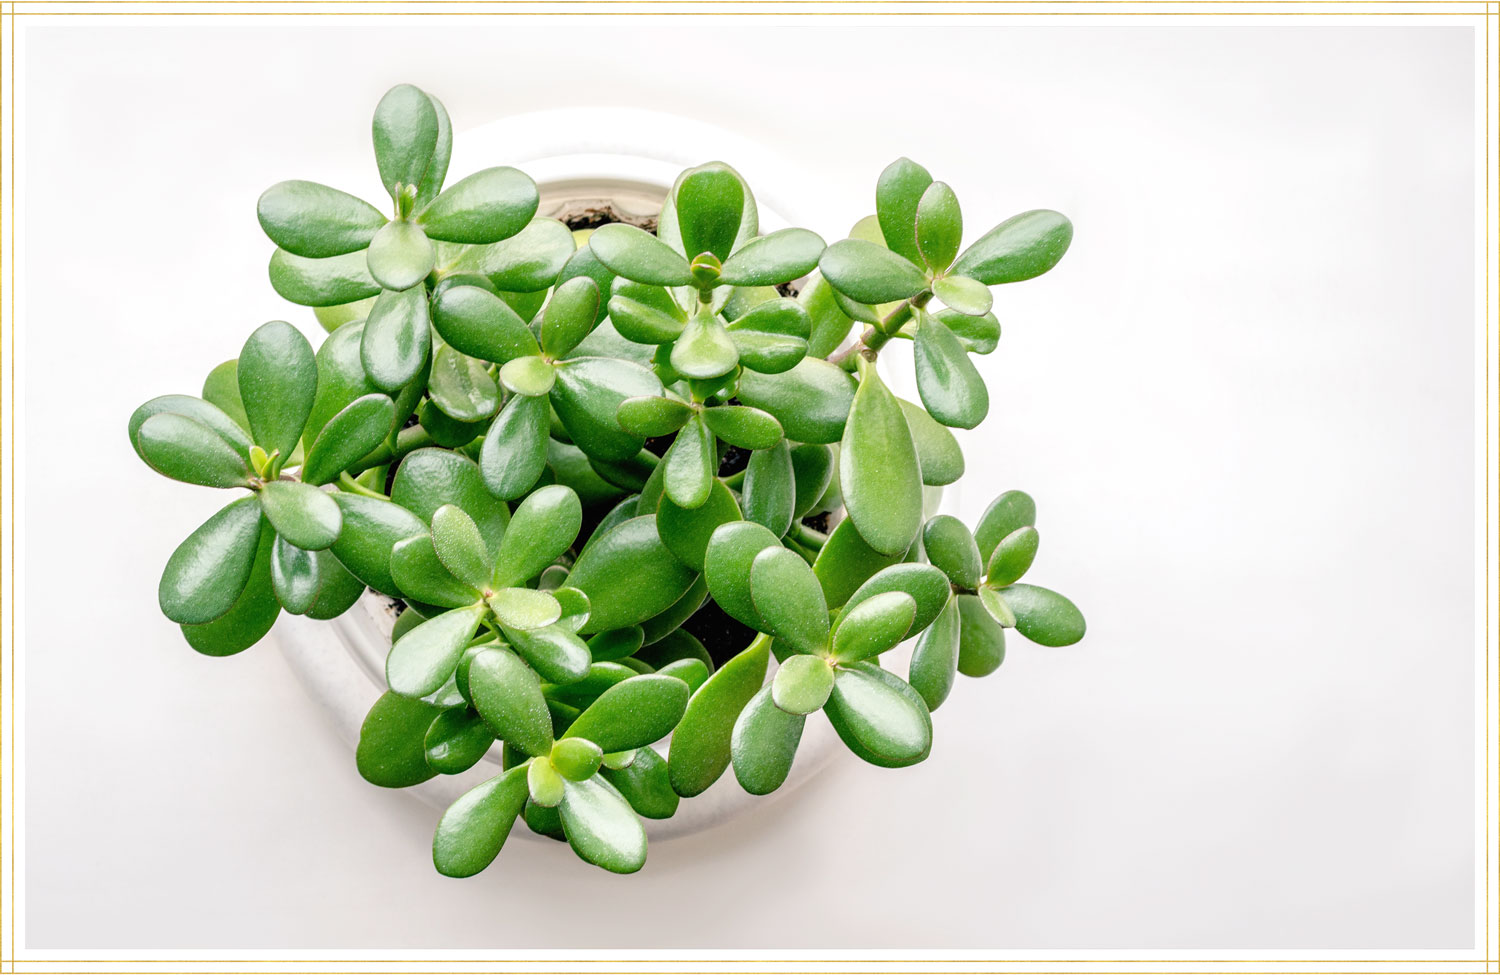 jade plant in a white container on a white table